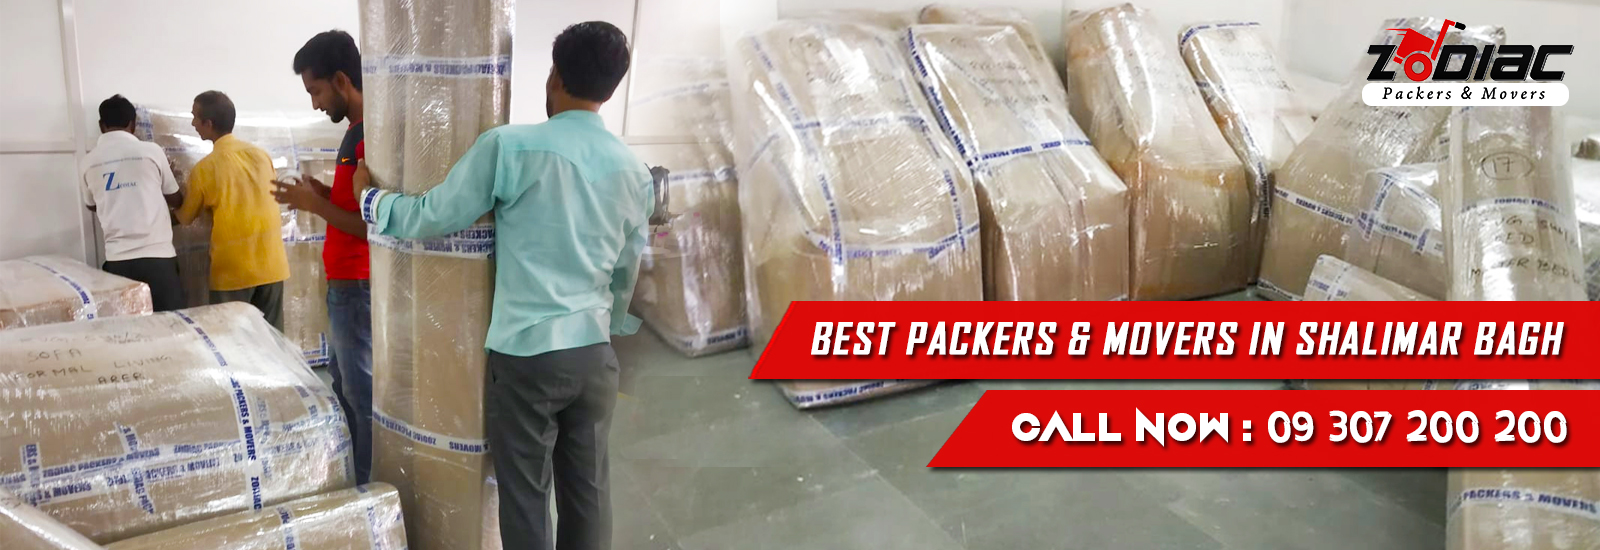 Packers and Movers in Shalimar Bagh